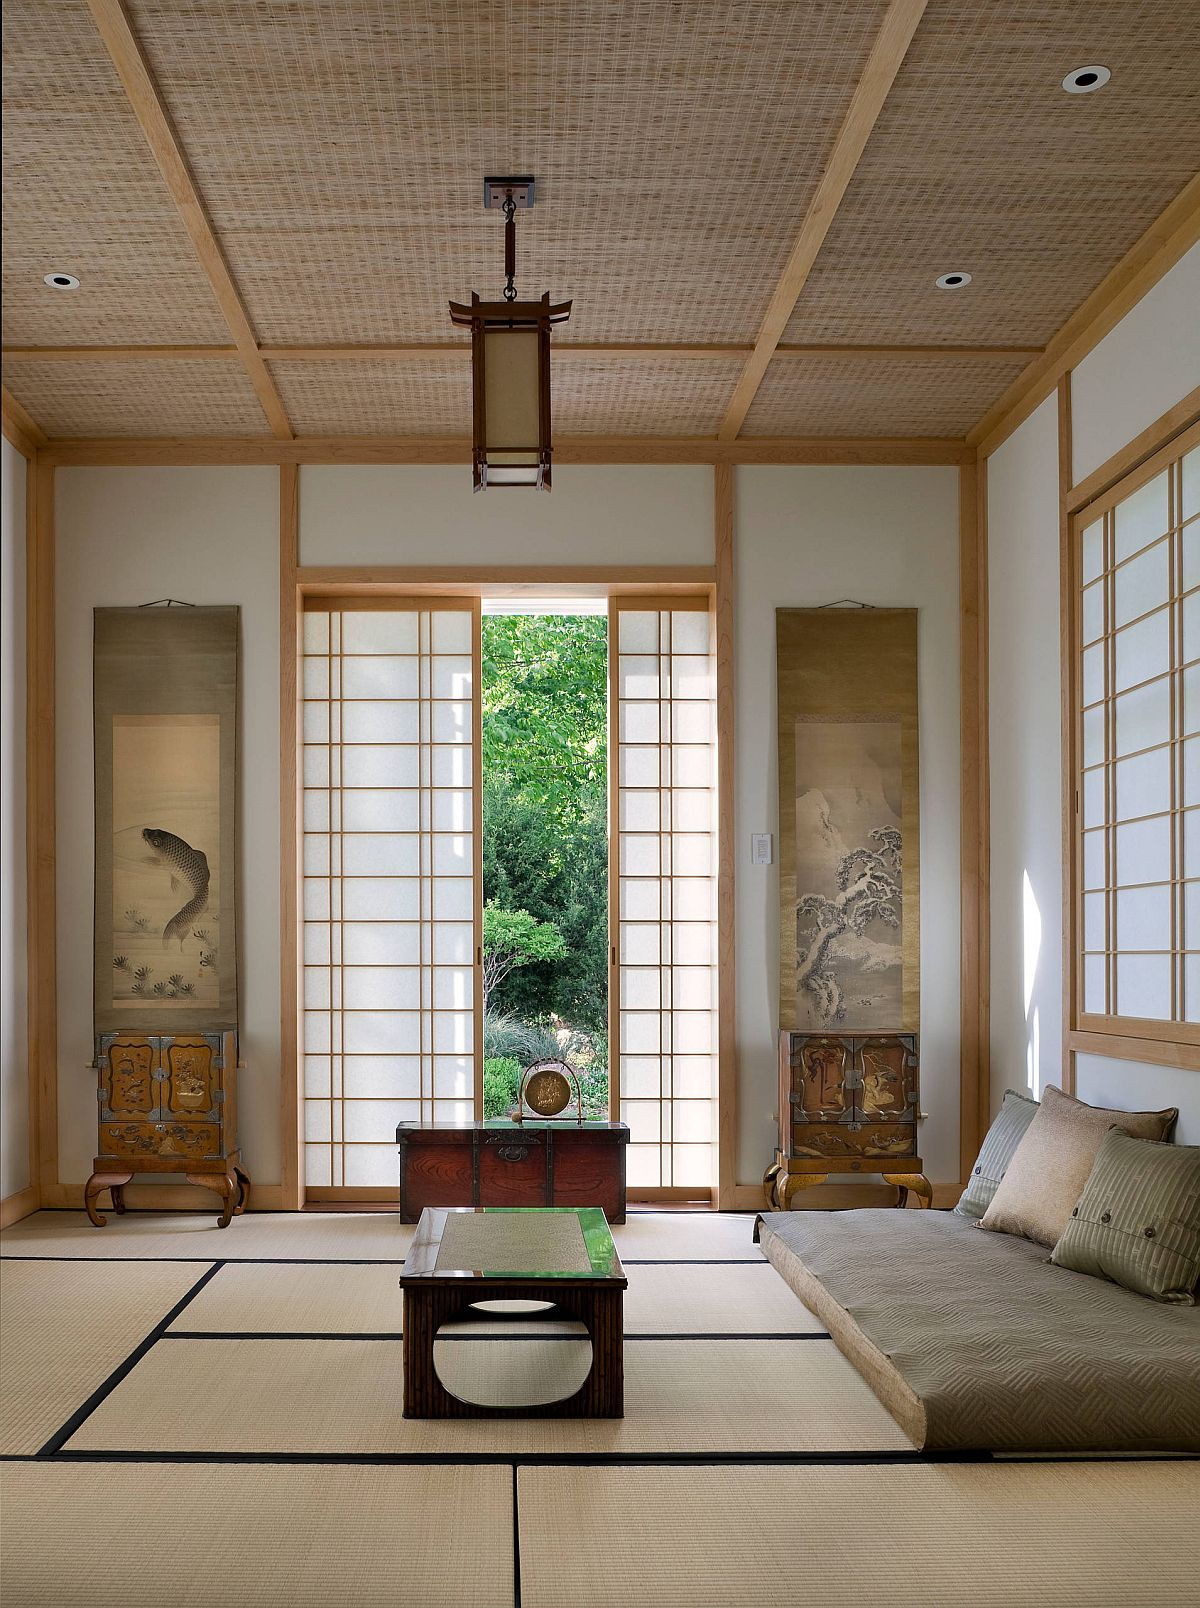 Asian style room is the perfect place to rest and relax